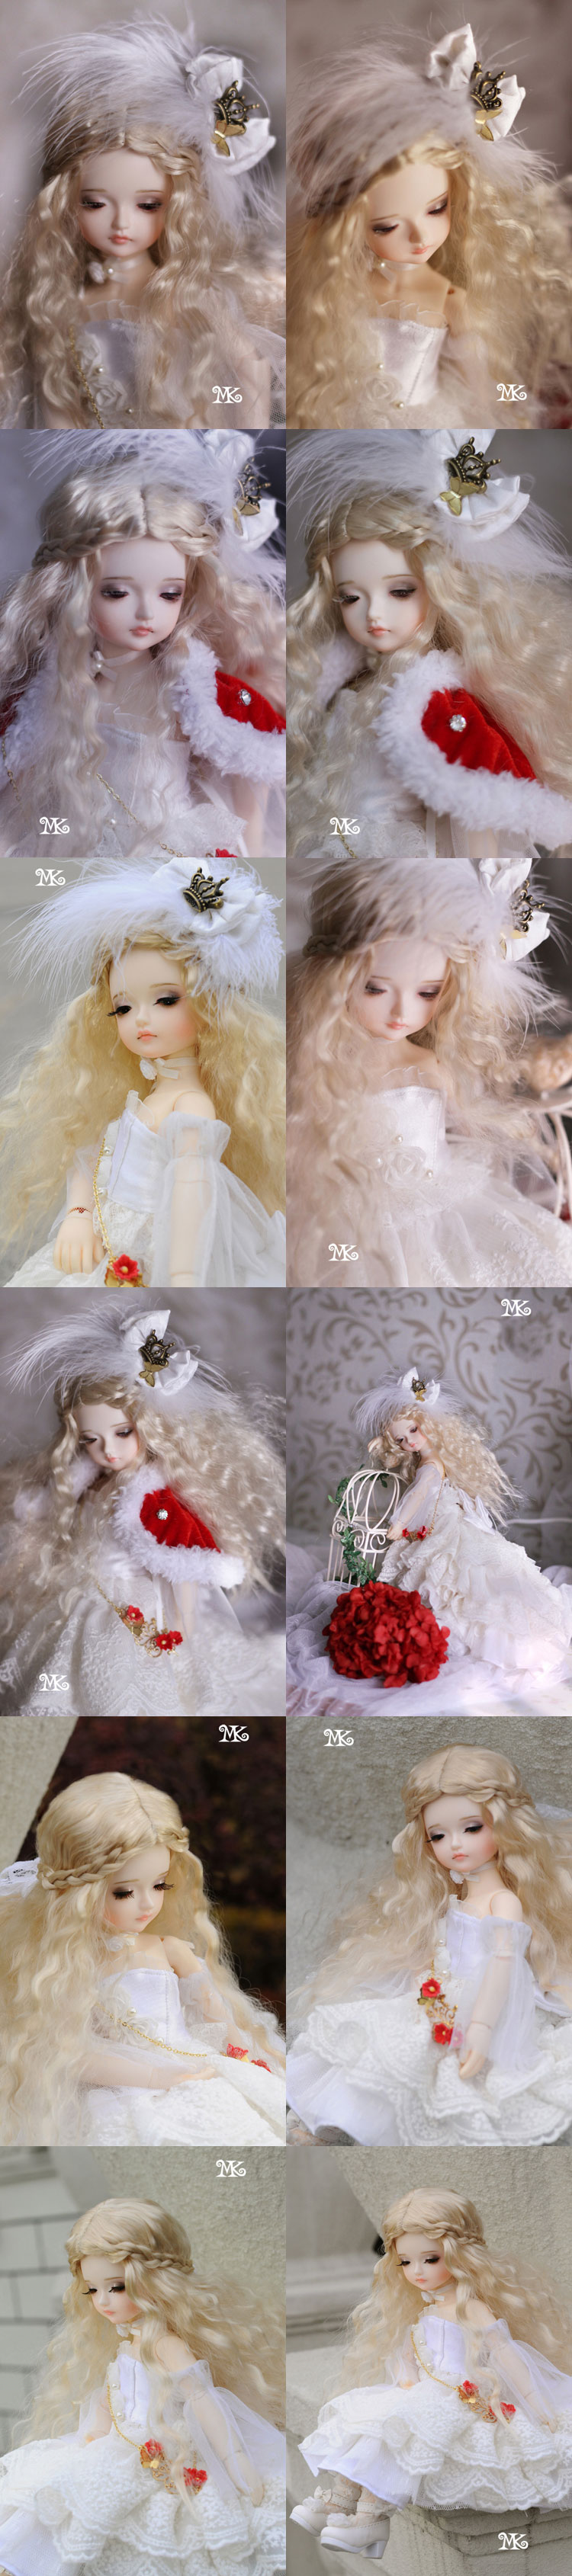 BJD Isabel 27cm Girl Ball-jointed doll